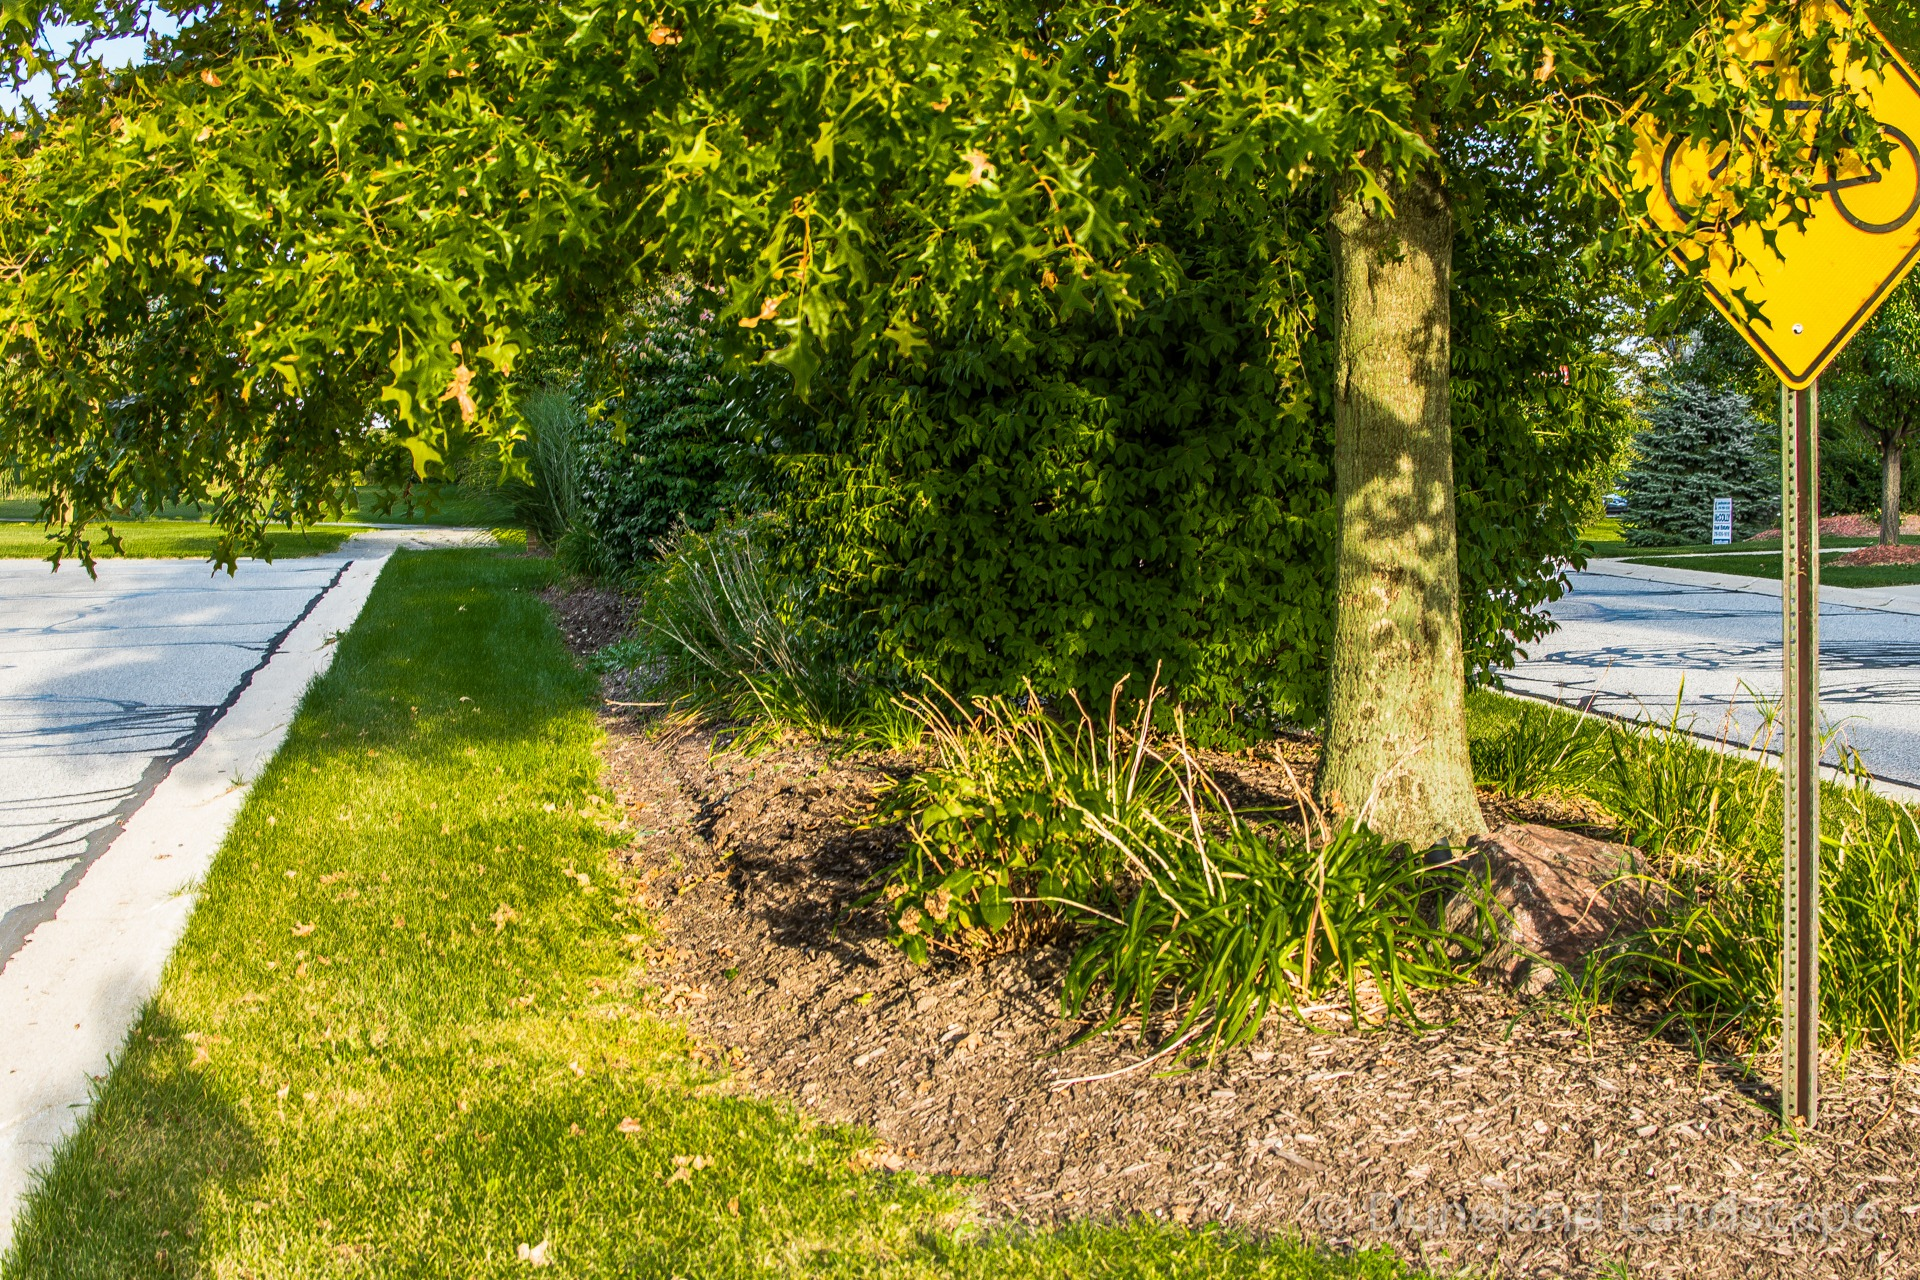 residential lawn care upkeep